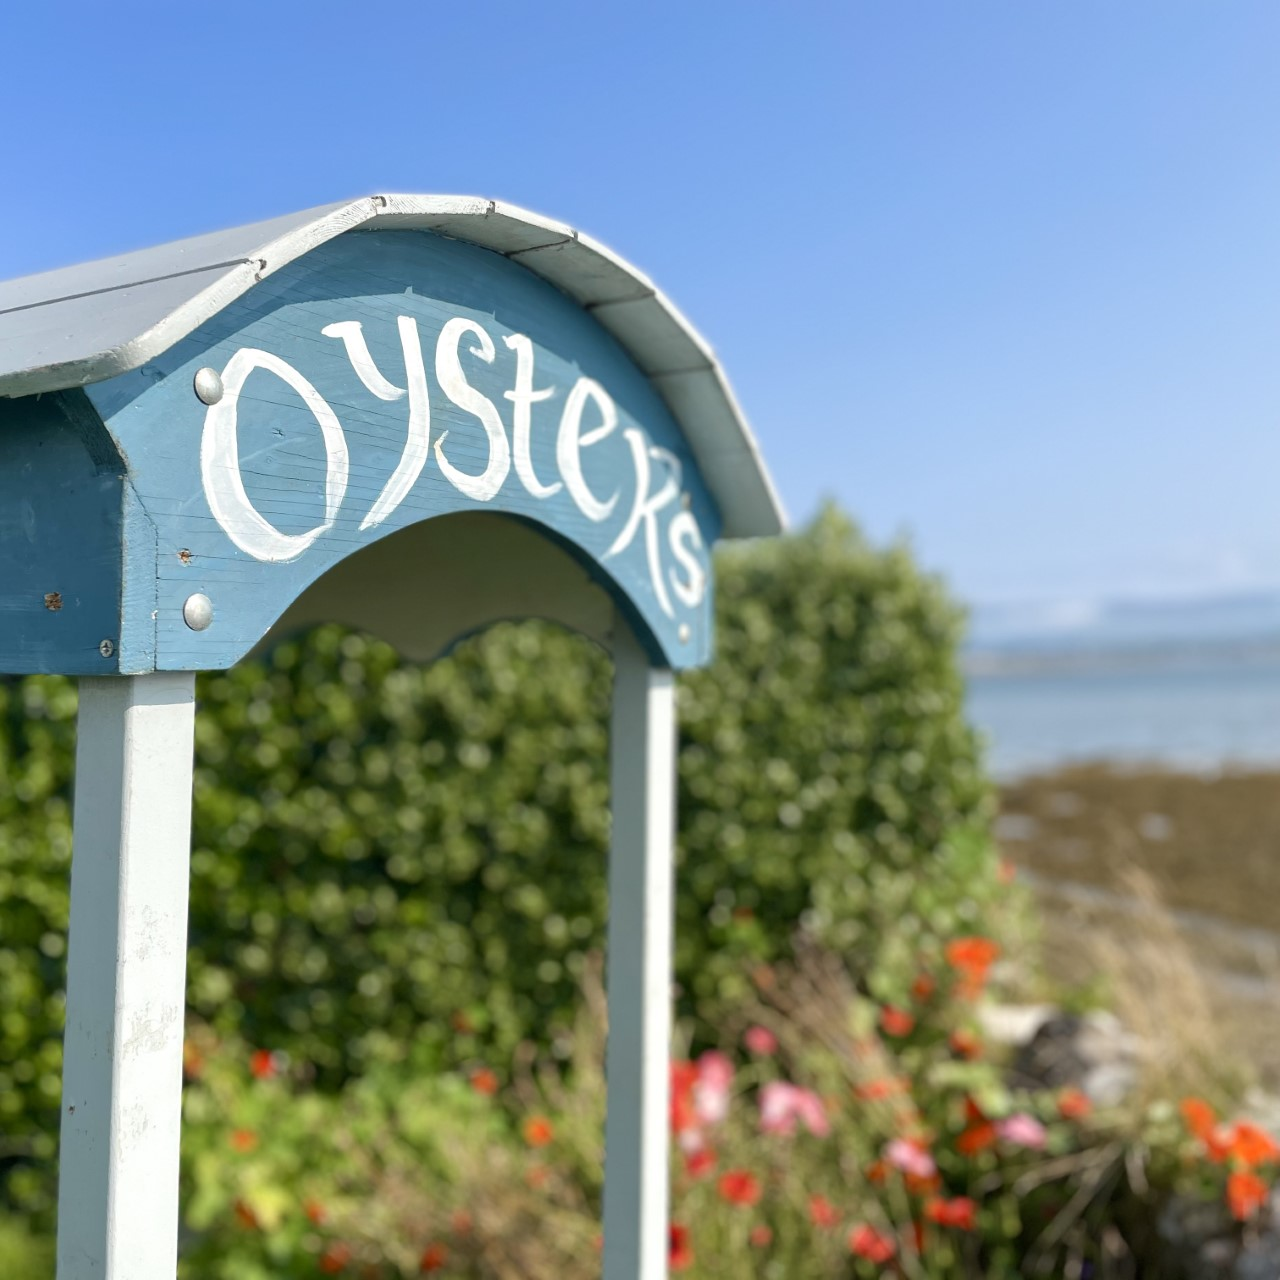 Oyster Cart on Oyster Farm Tour